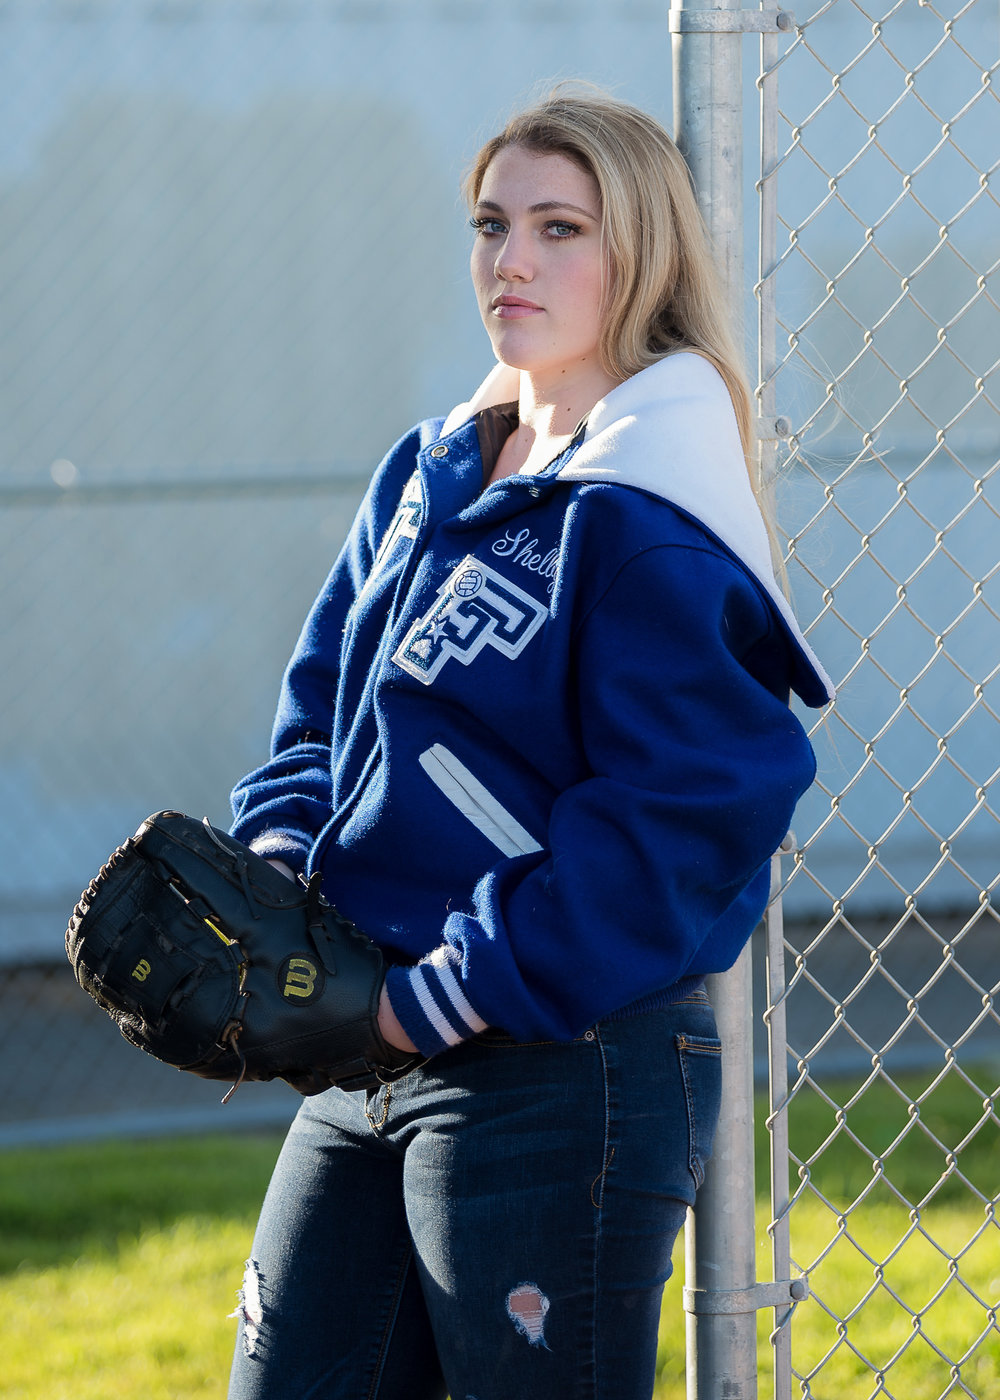 HumboldtCountySeniorPhotographer-Shelby-FortunaHigh-Softball.JPG